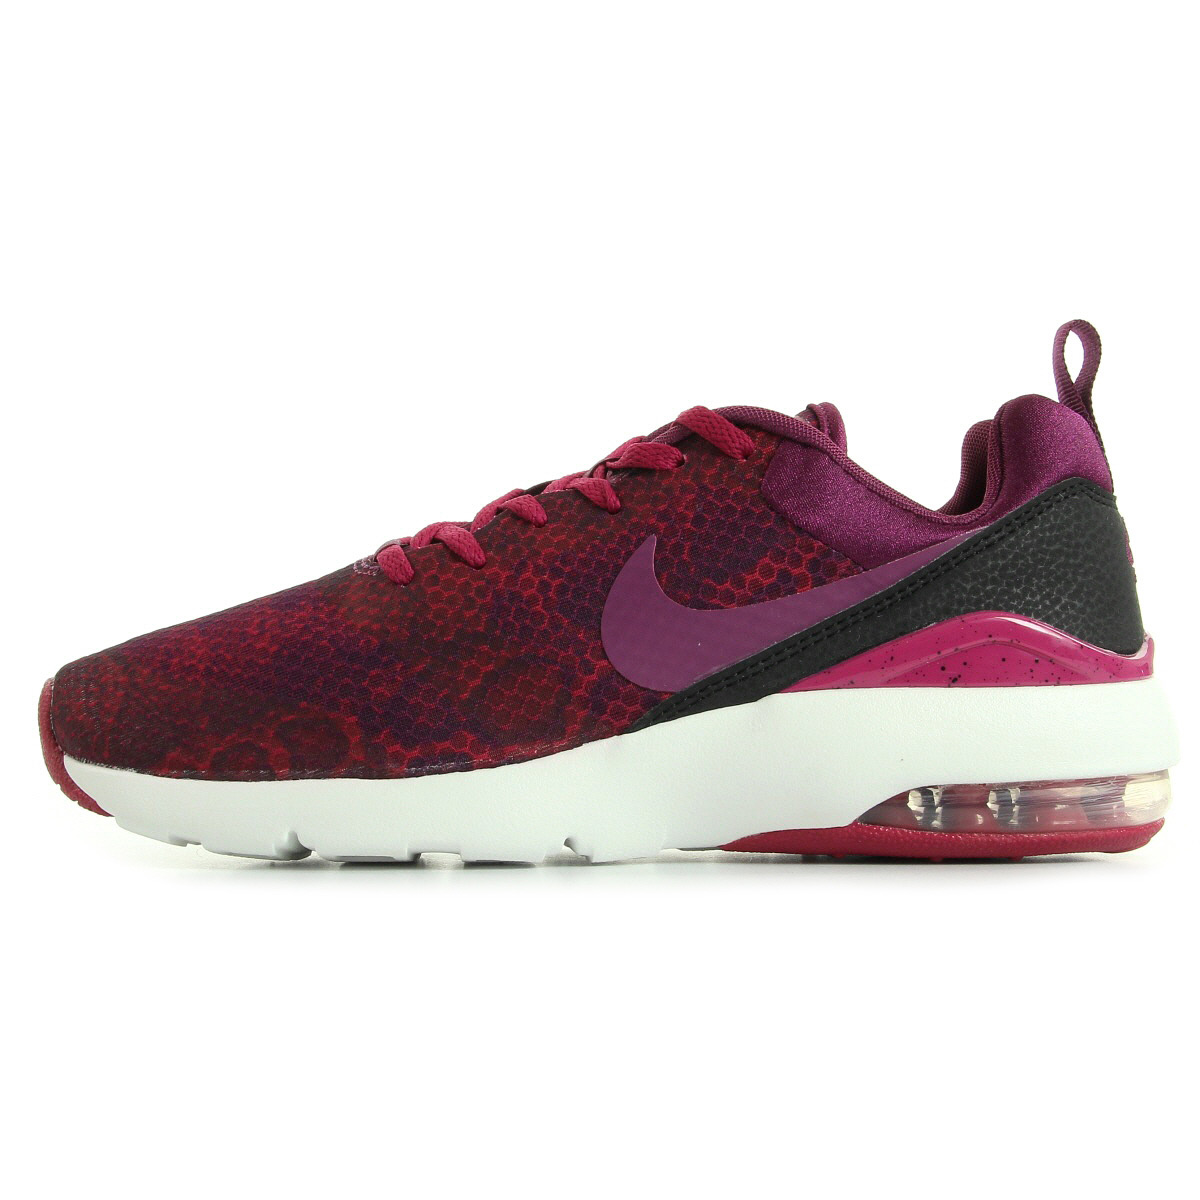 Chaussures Nike Air Max Siren rose fushia Fashion femme